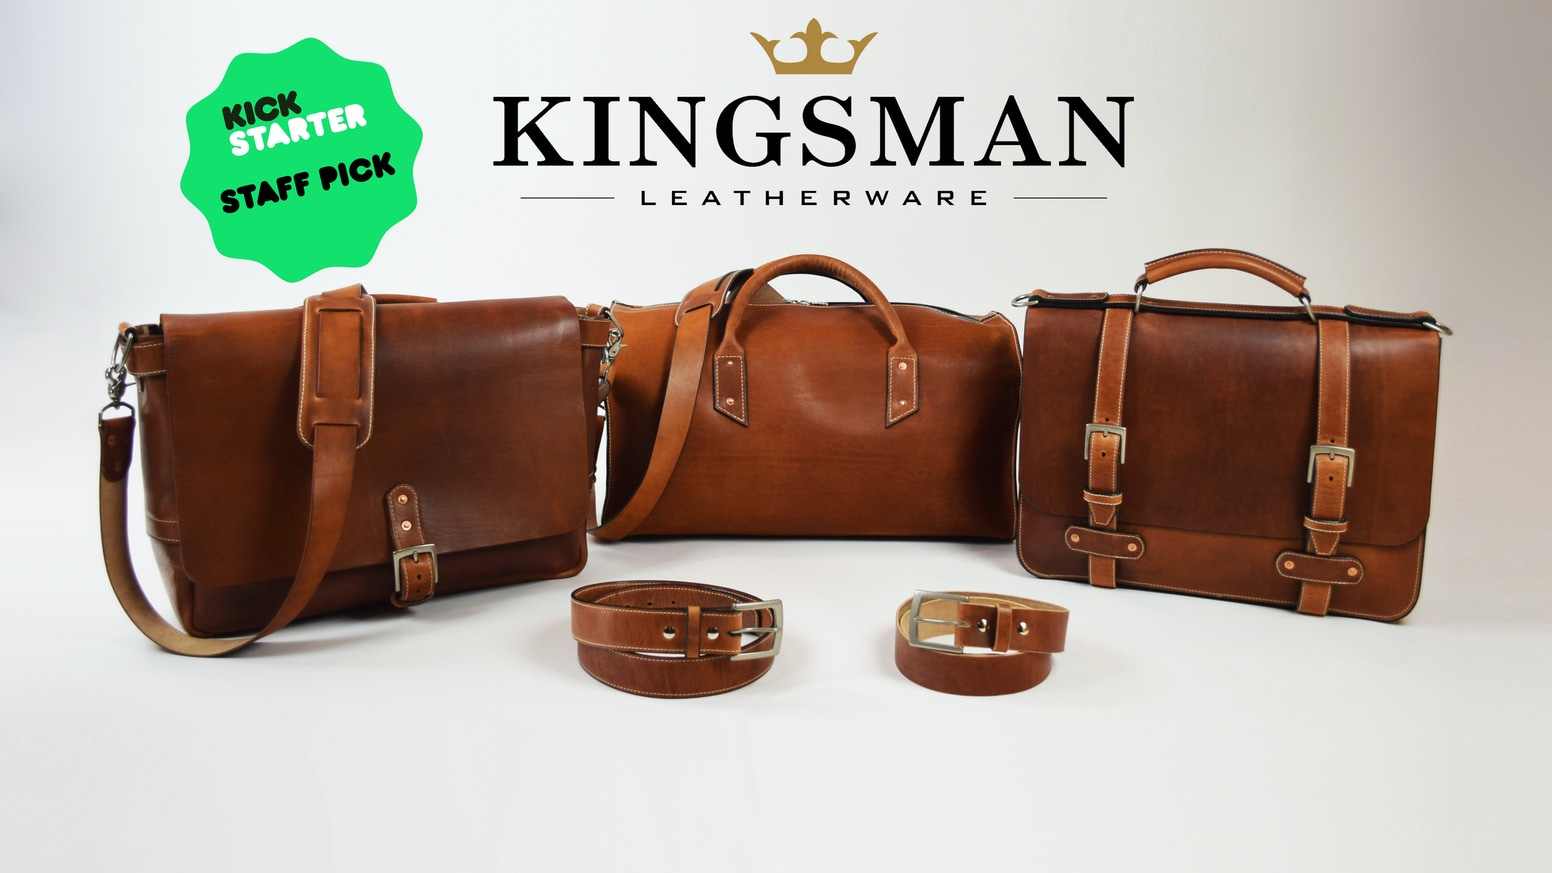 Premium leather bags, belts and accessories, built to last and Guaranteed for Life. Proudly made in the USA.